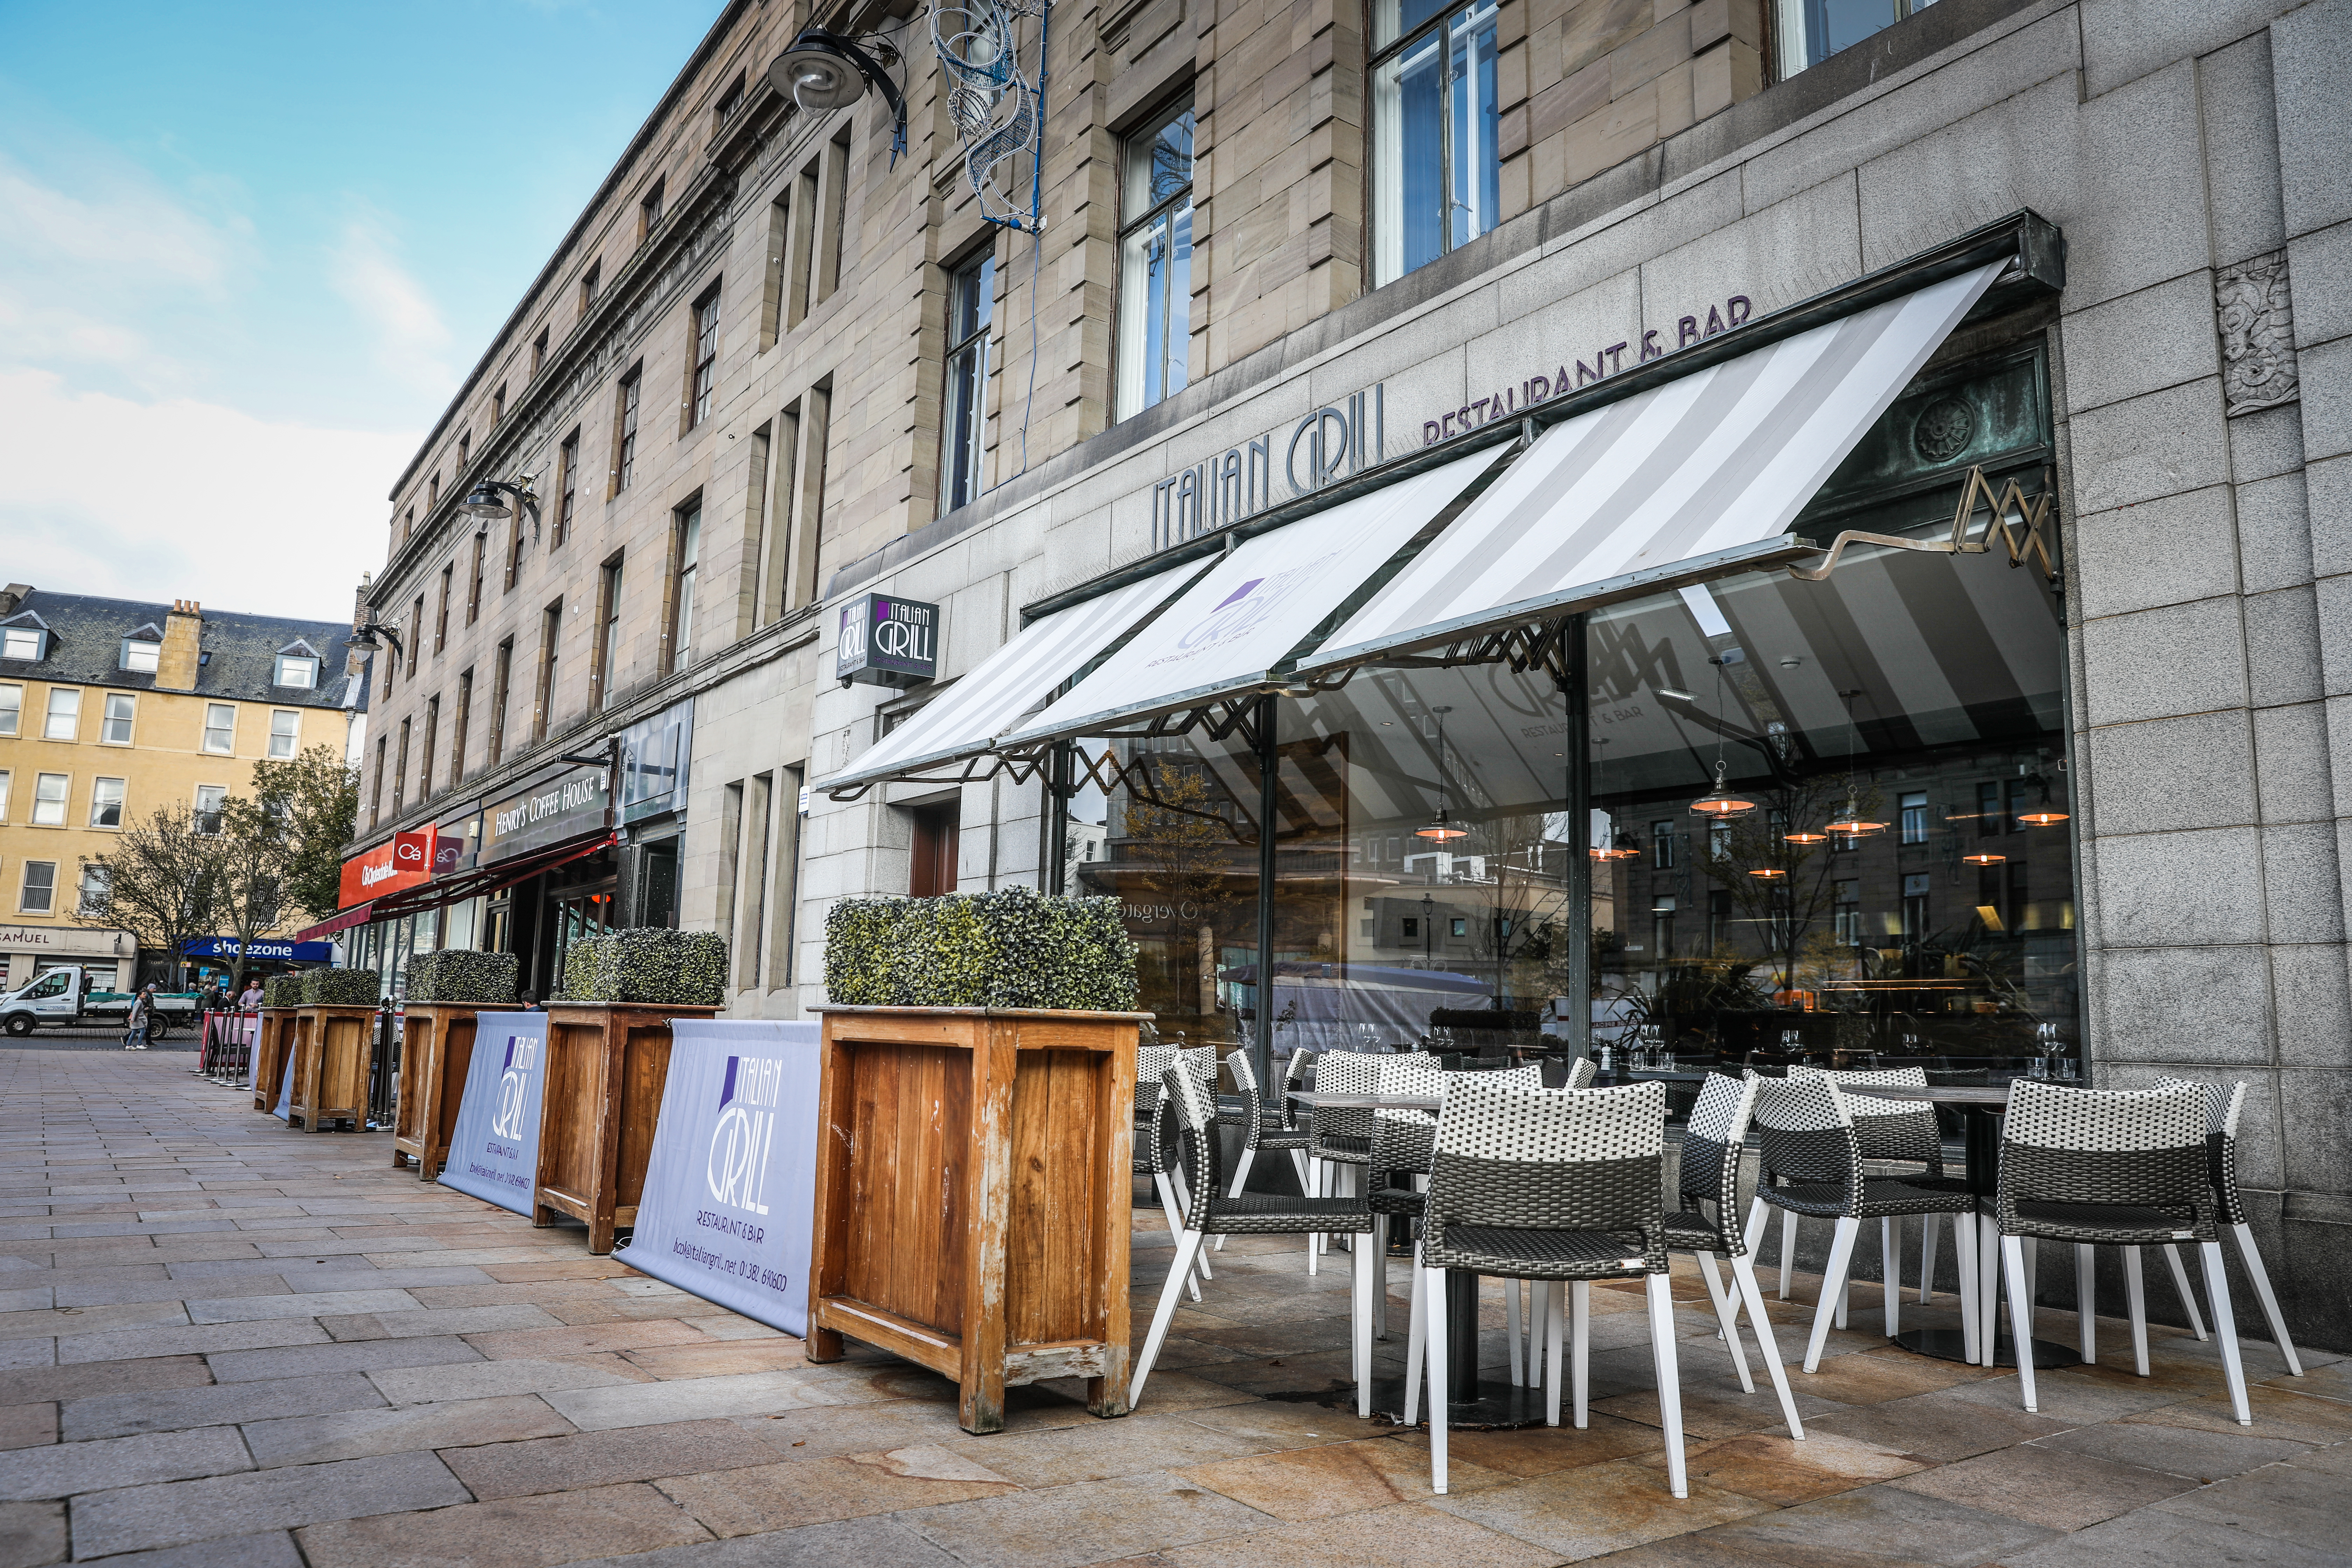 Italian Grill in City Square, Dundee.